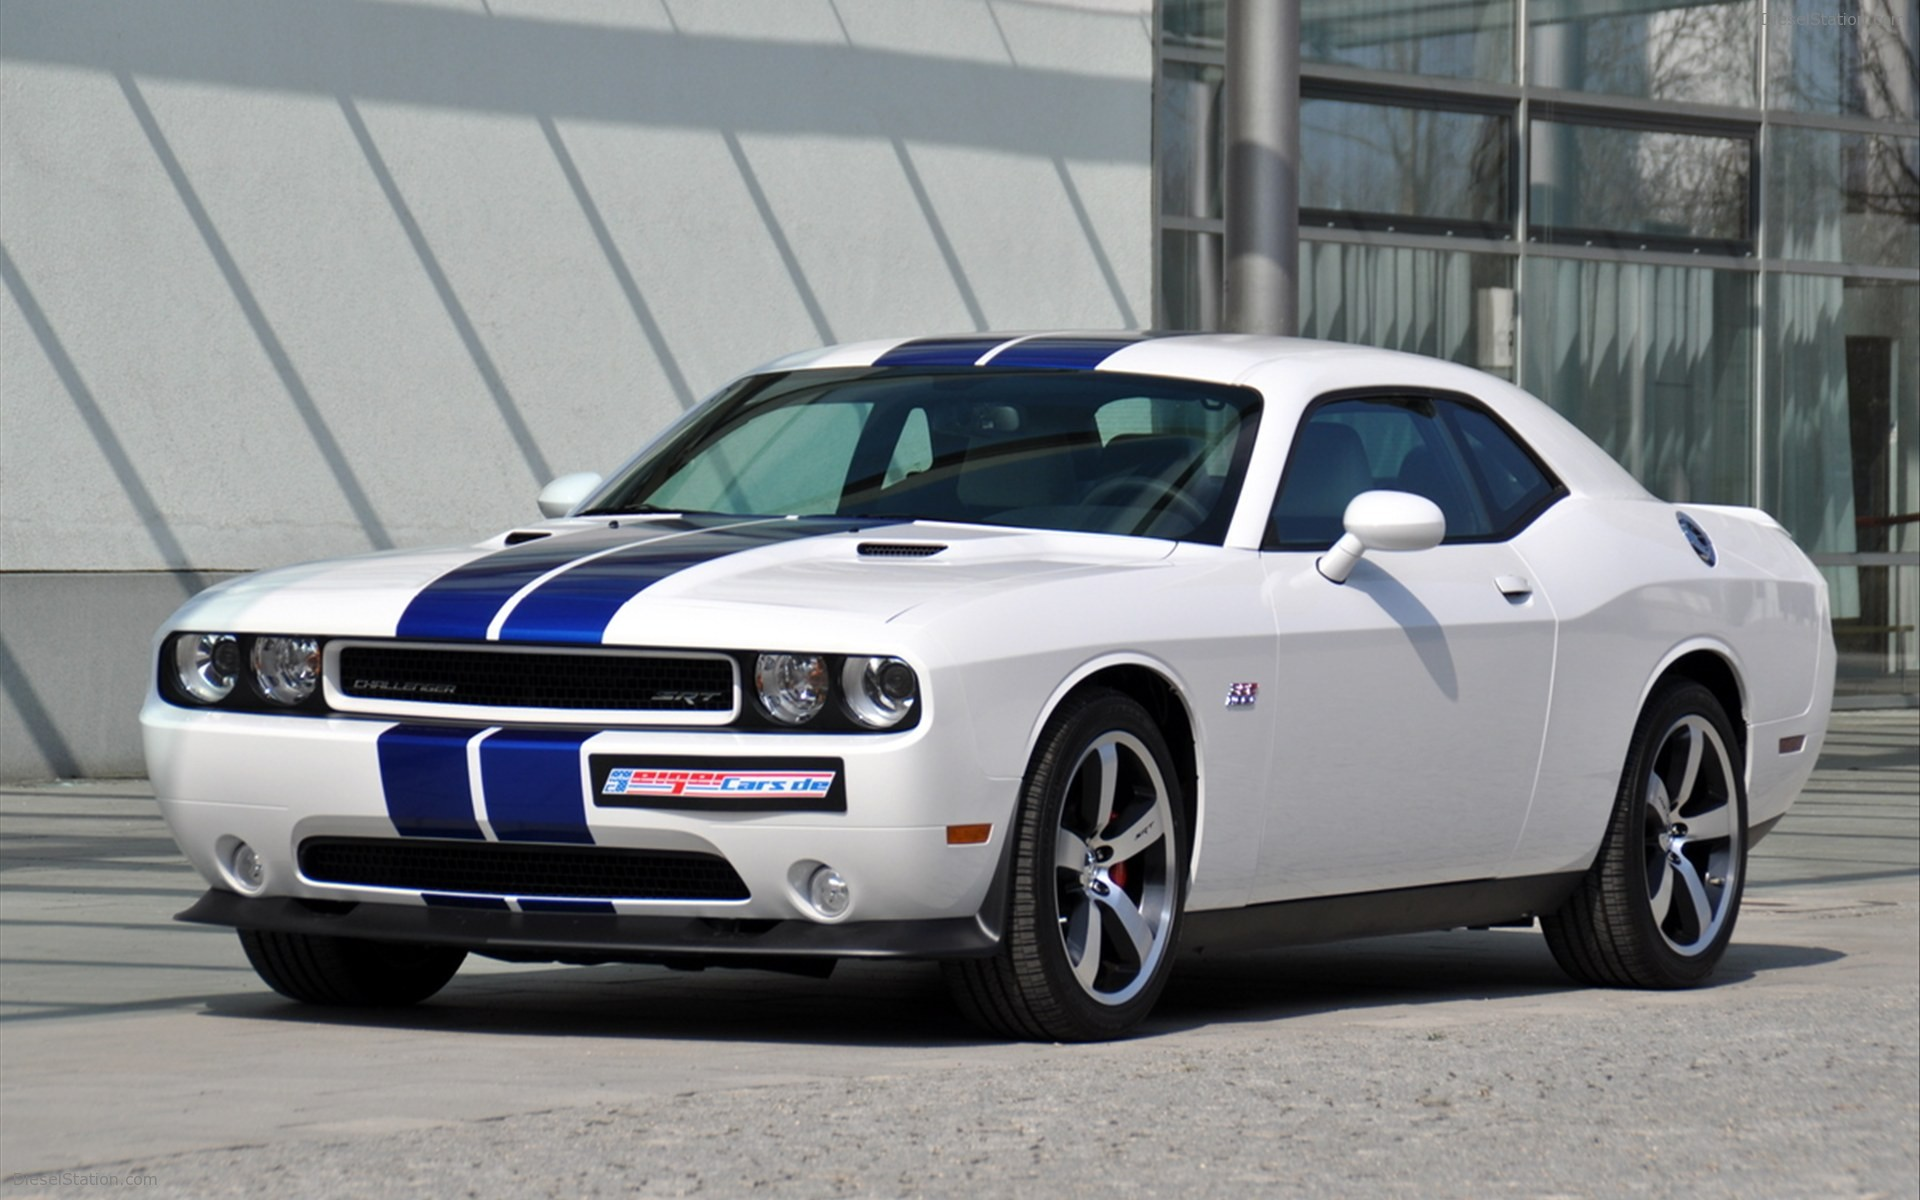 Home GeigerCarsde Dodge Challenger SRT8 392 2011 by GeigerCarsde 1920x1200